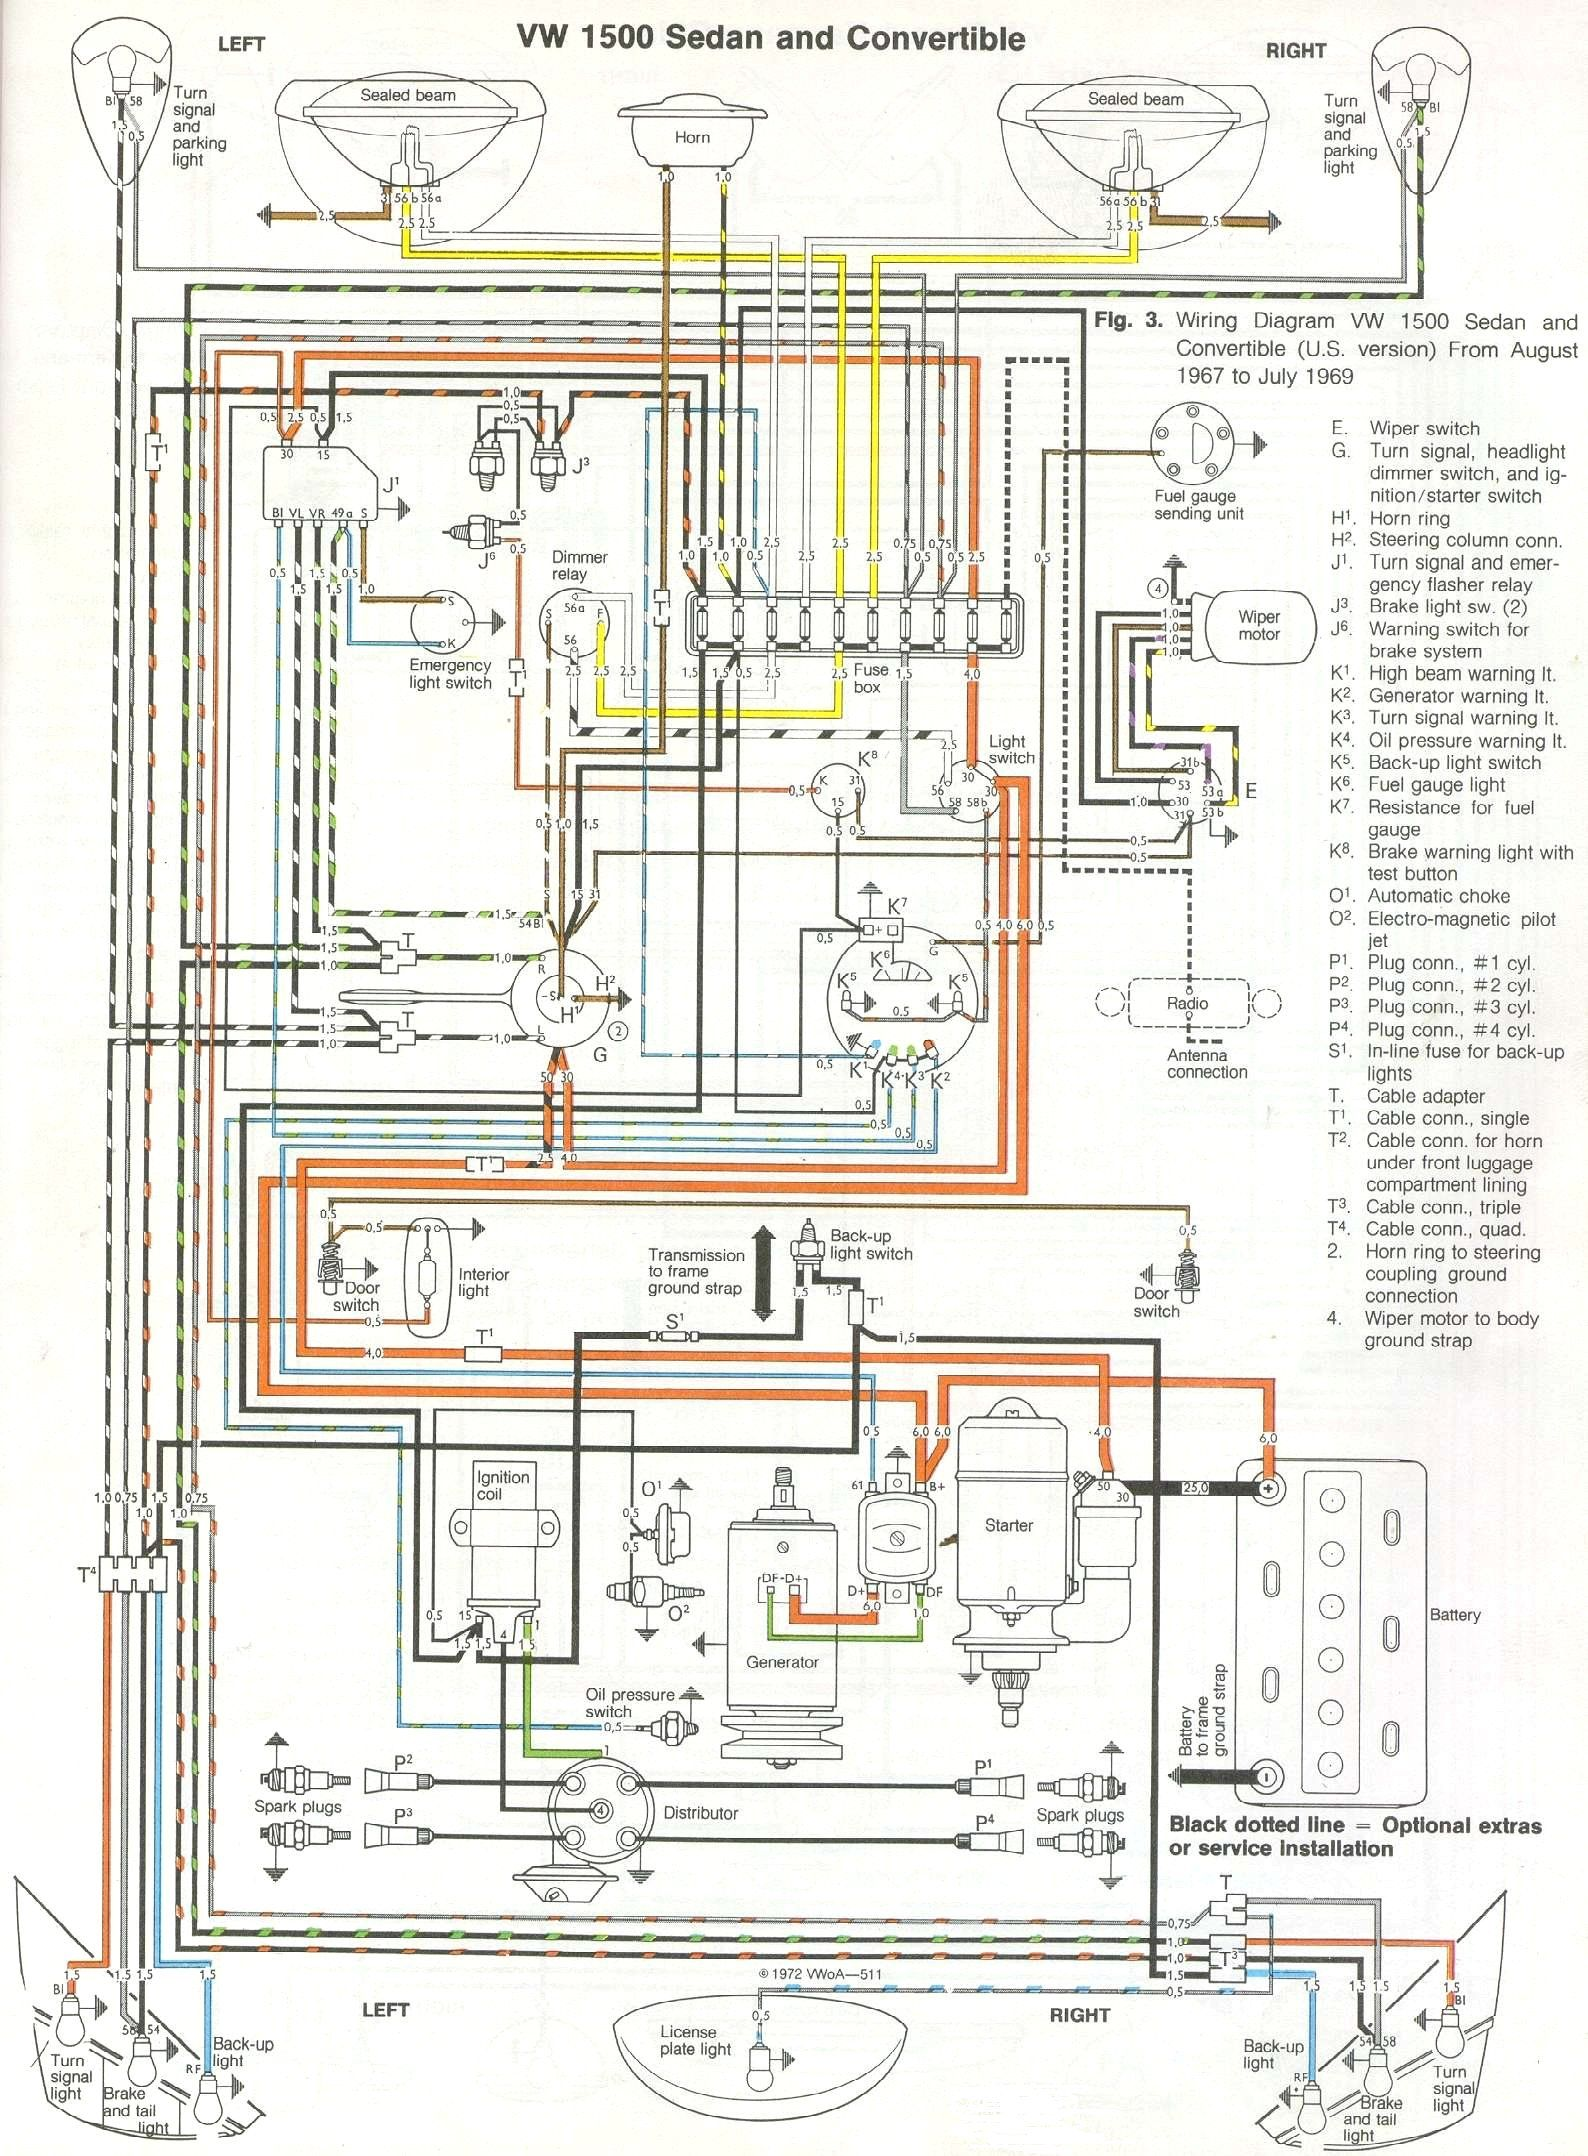 1968 vw beetle wiring diagram made easy catalogue of schemas vw bus diagram wiring diagram